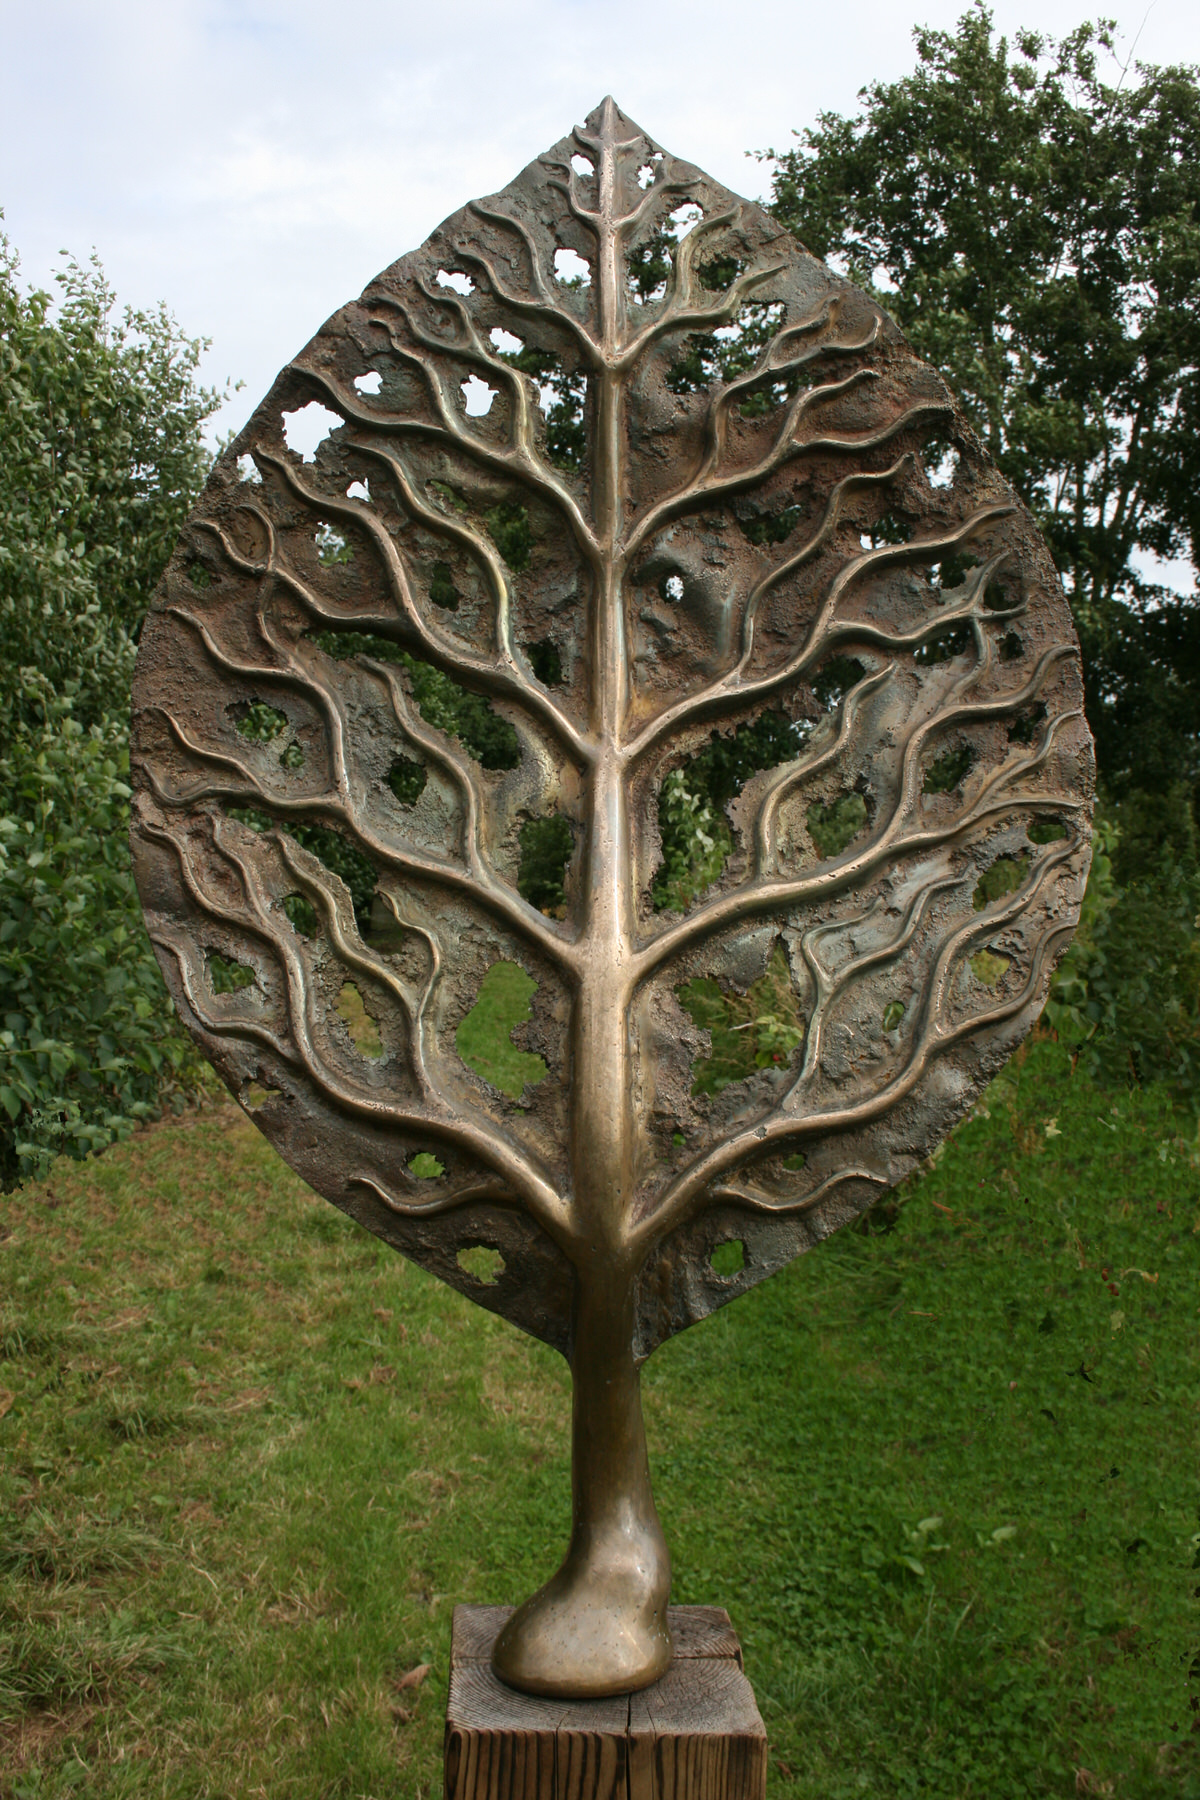 Life Leaf Medium bronze garden sculpture trees art tree sculpture sculpture for the home by Mark Reed